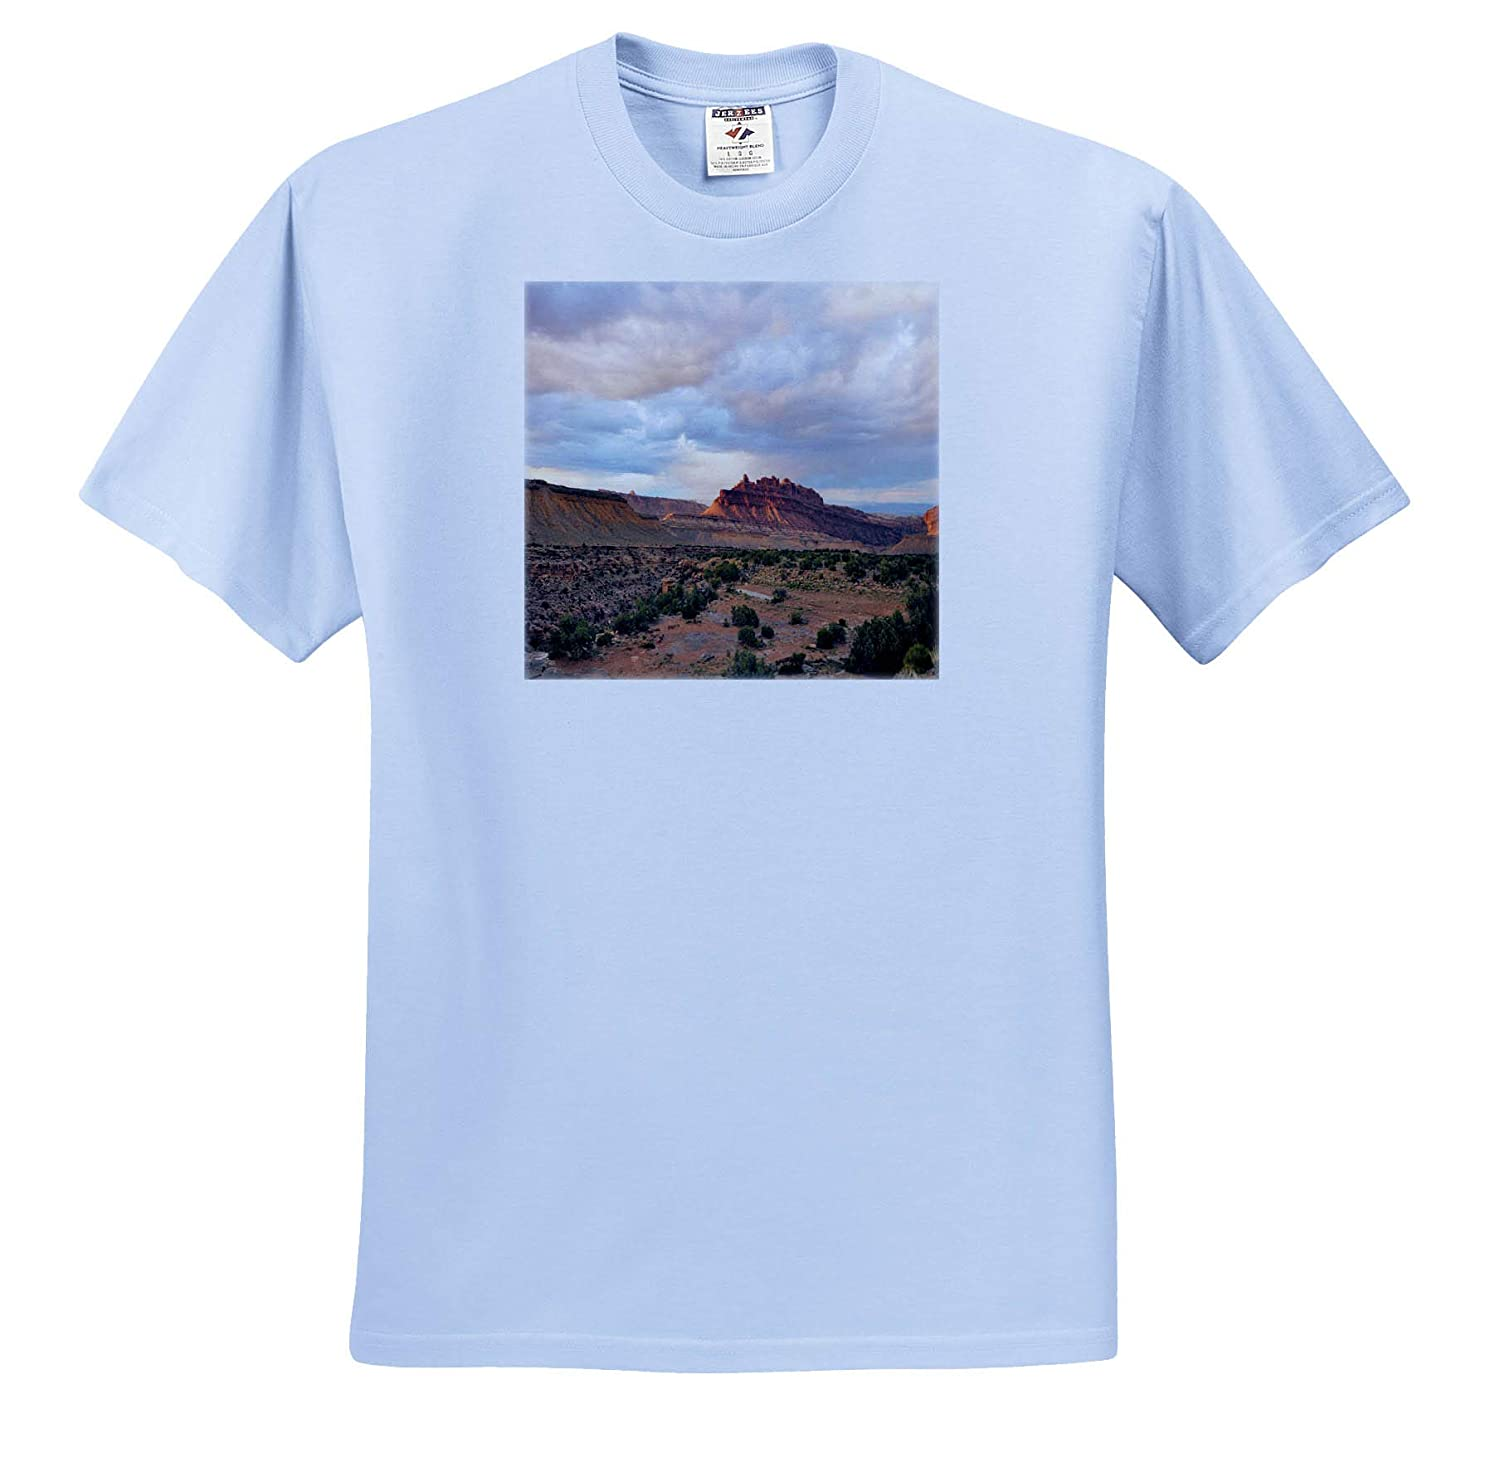 Black Dragon Canyon Adult T-Shirt XL ts/_314238 Scenery 3dRose Dreamscapes by Leslie